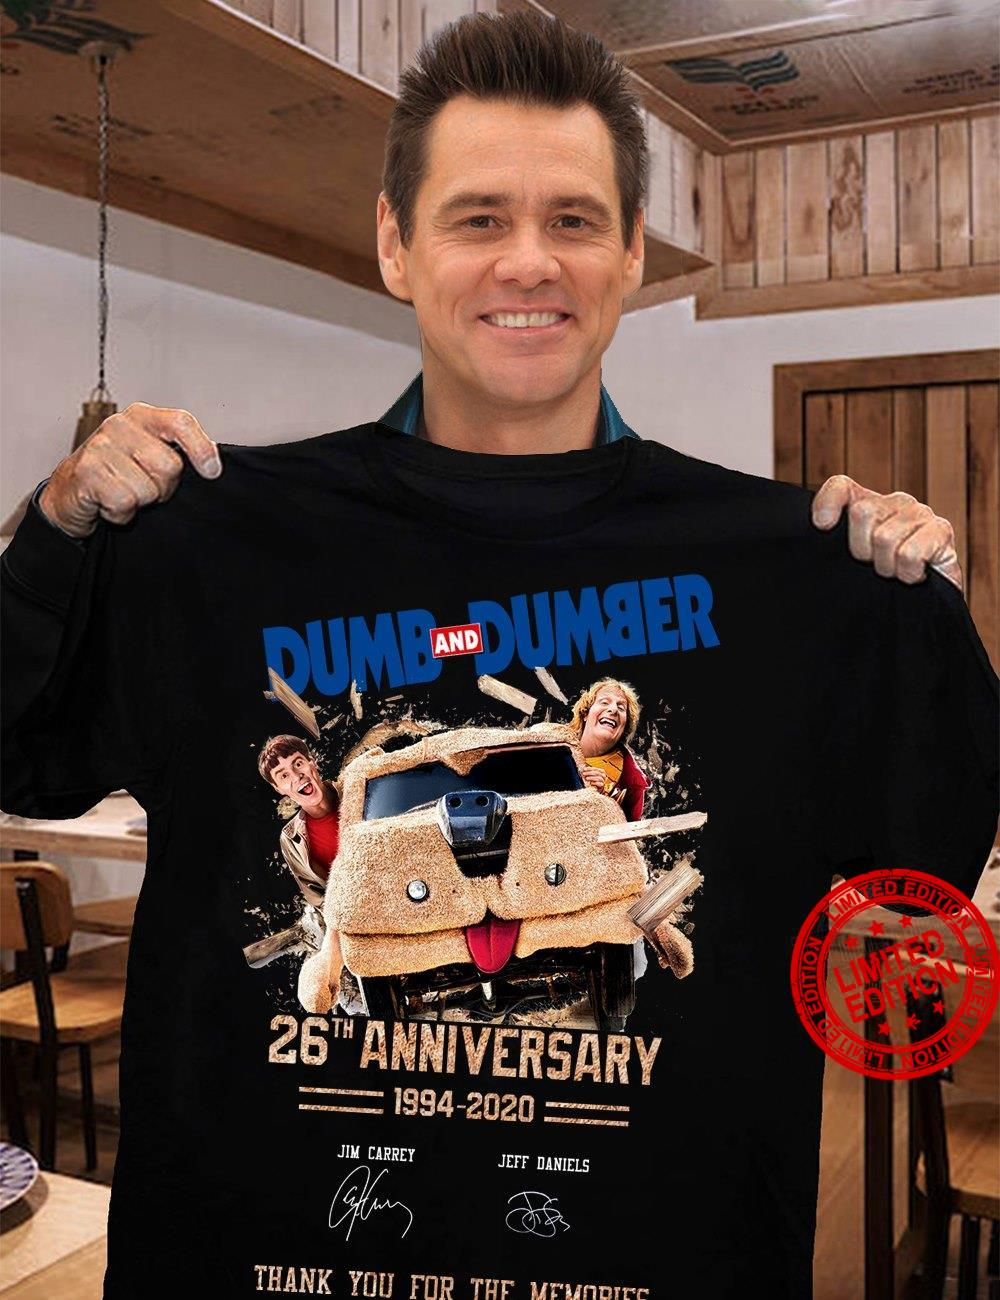 Dumb And Dumber 26th Anniversary 1994-2020 Thank You For The Memories Shirt